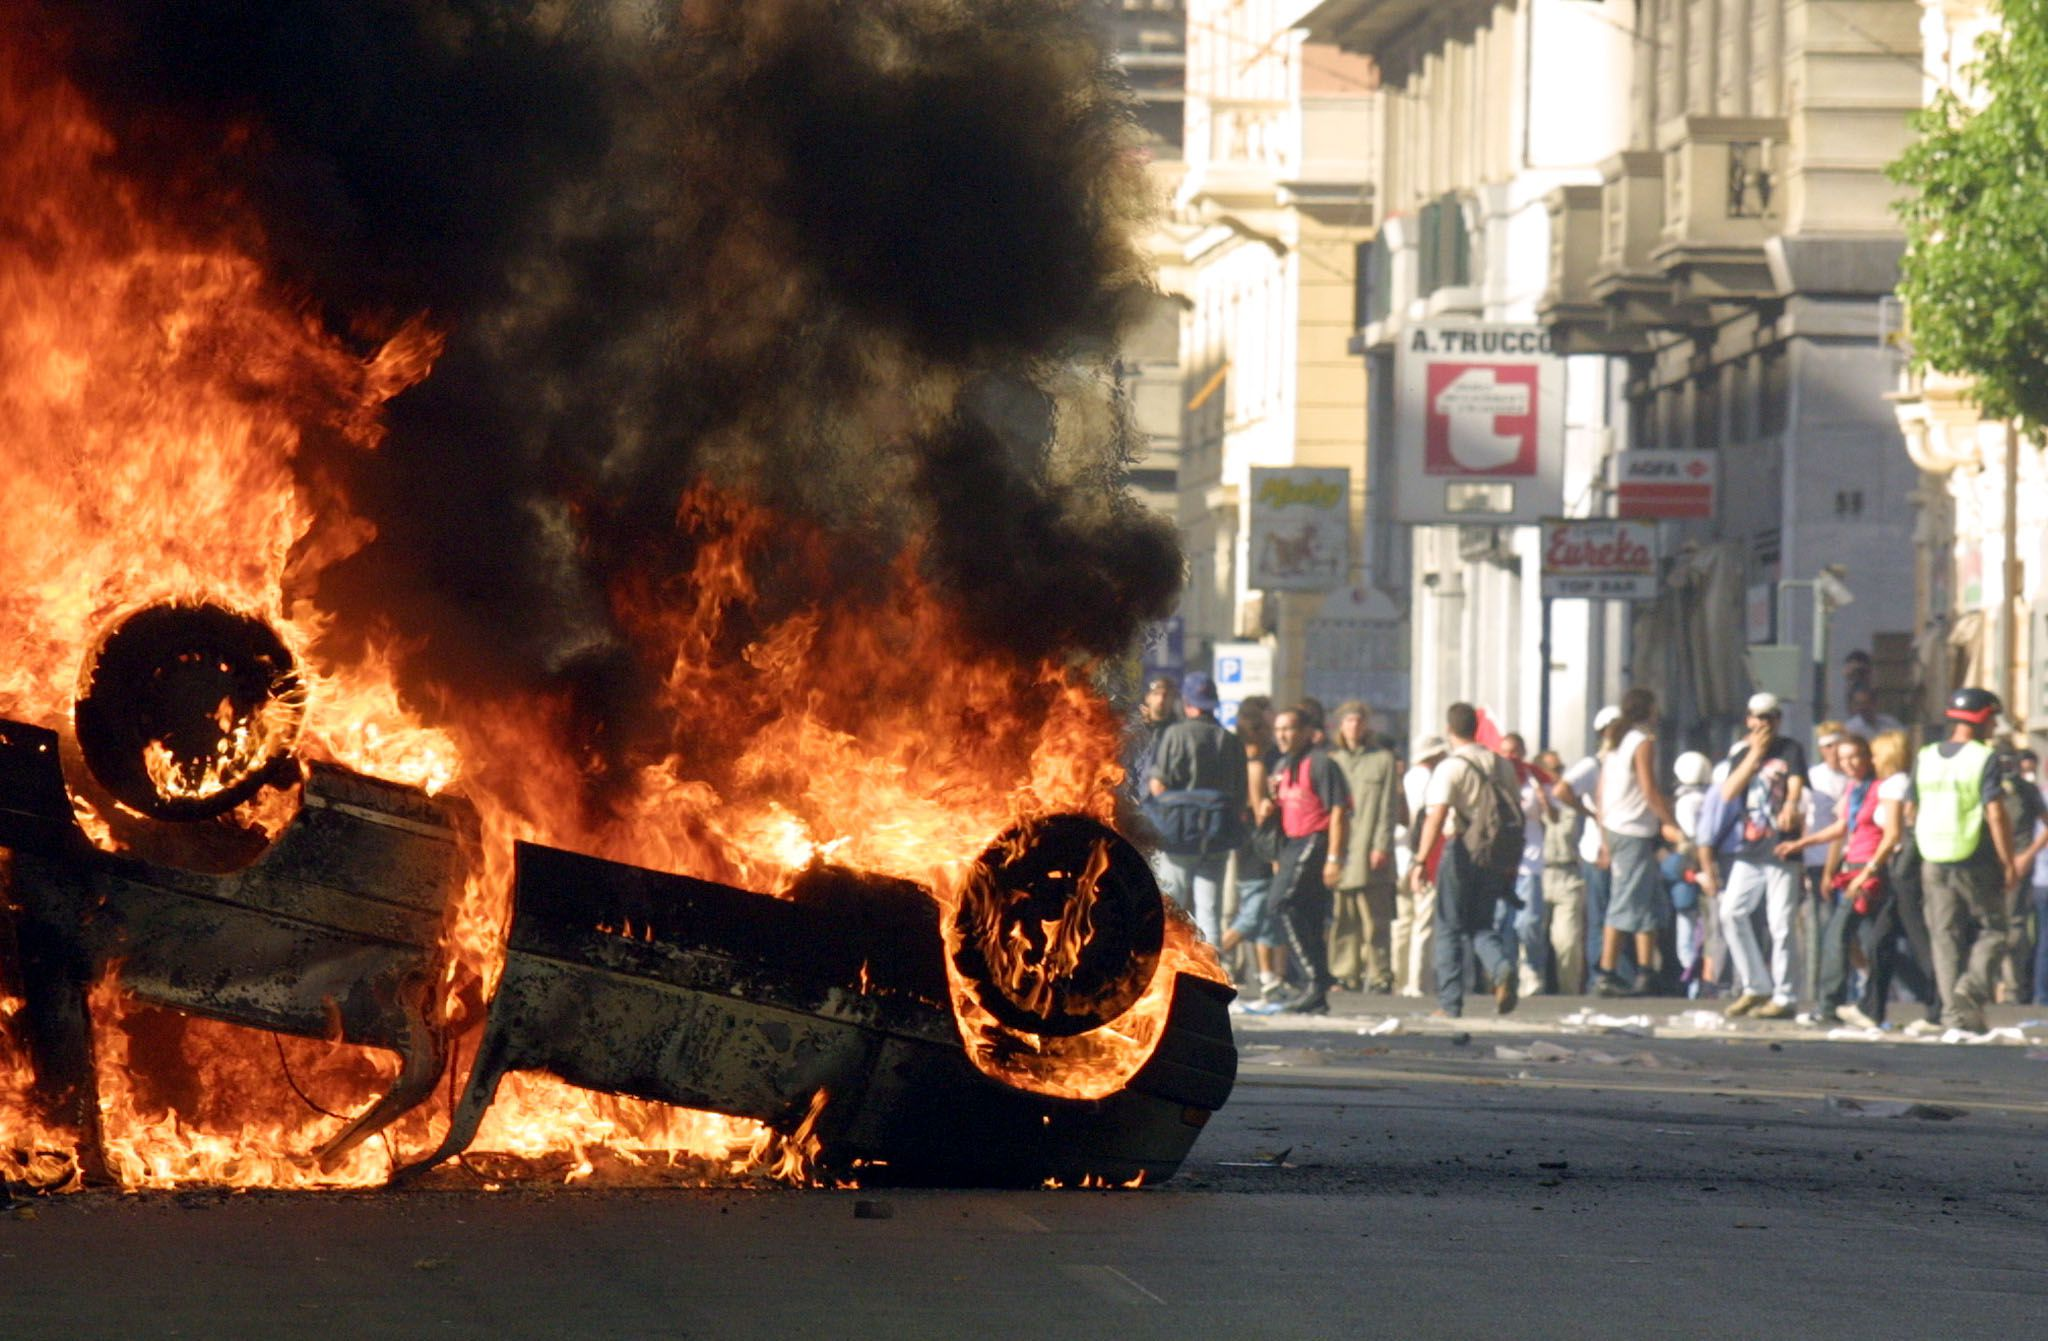 A car burns after anti-globalisation activists clashed with the police during a protest against the G8 summit in Genoa 21July 2001. Italian police and protestors clashed Saturday on the second day of protests in the Mediterranean city hosting the Group of Eight (G8) summit. Police repeatedly fired tear gas at groups of protestors who broke away from a crowd of some 50,000 demonstrators, most of whom filed peacefully through the streets of the ancient port city. AFP PHOTO GERARD JULIEN (Photo credit should read GERARD JULIEN/AFP/Getty Images)